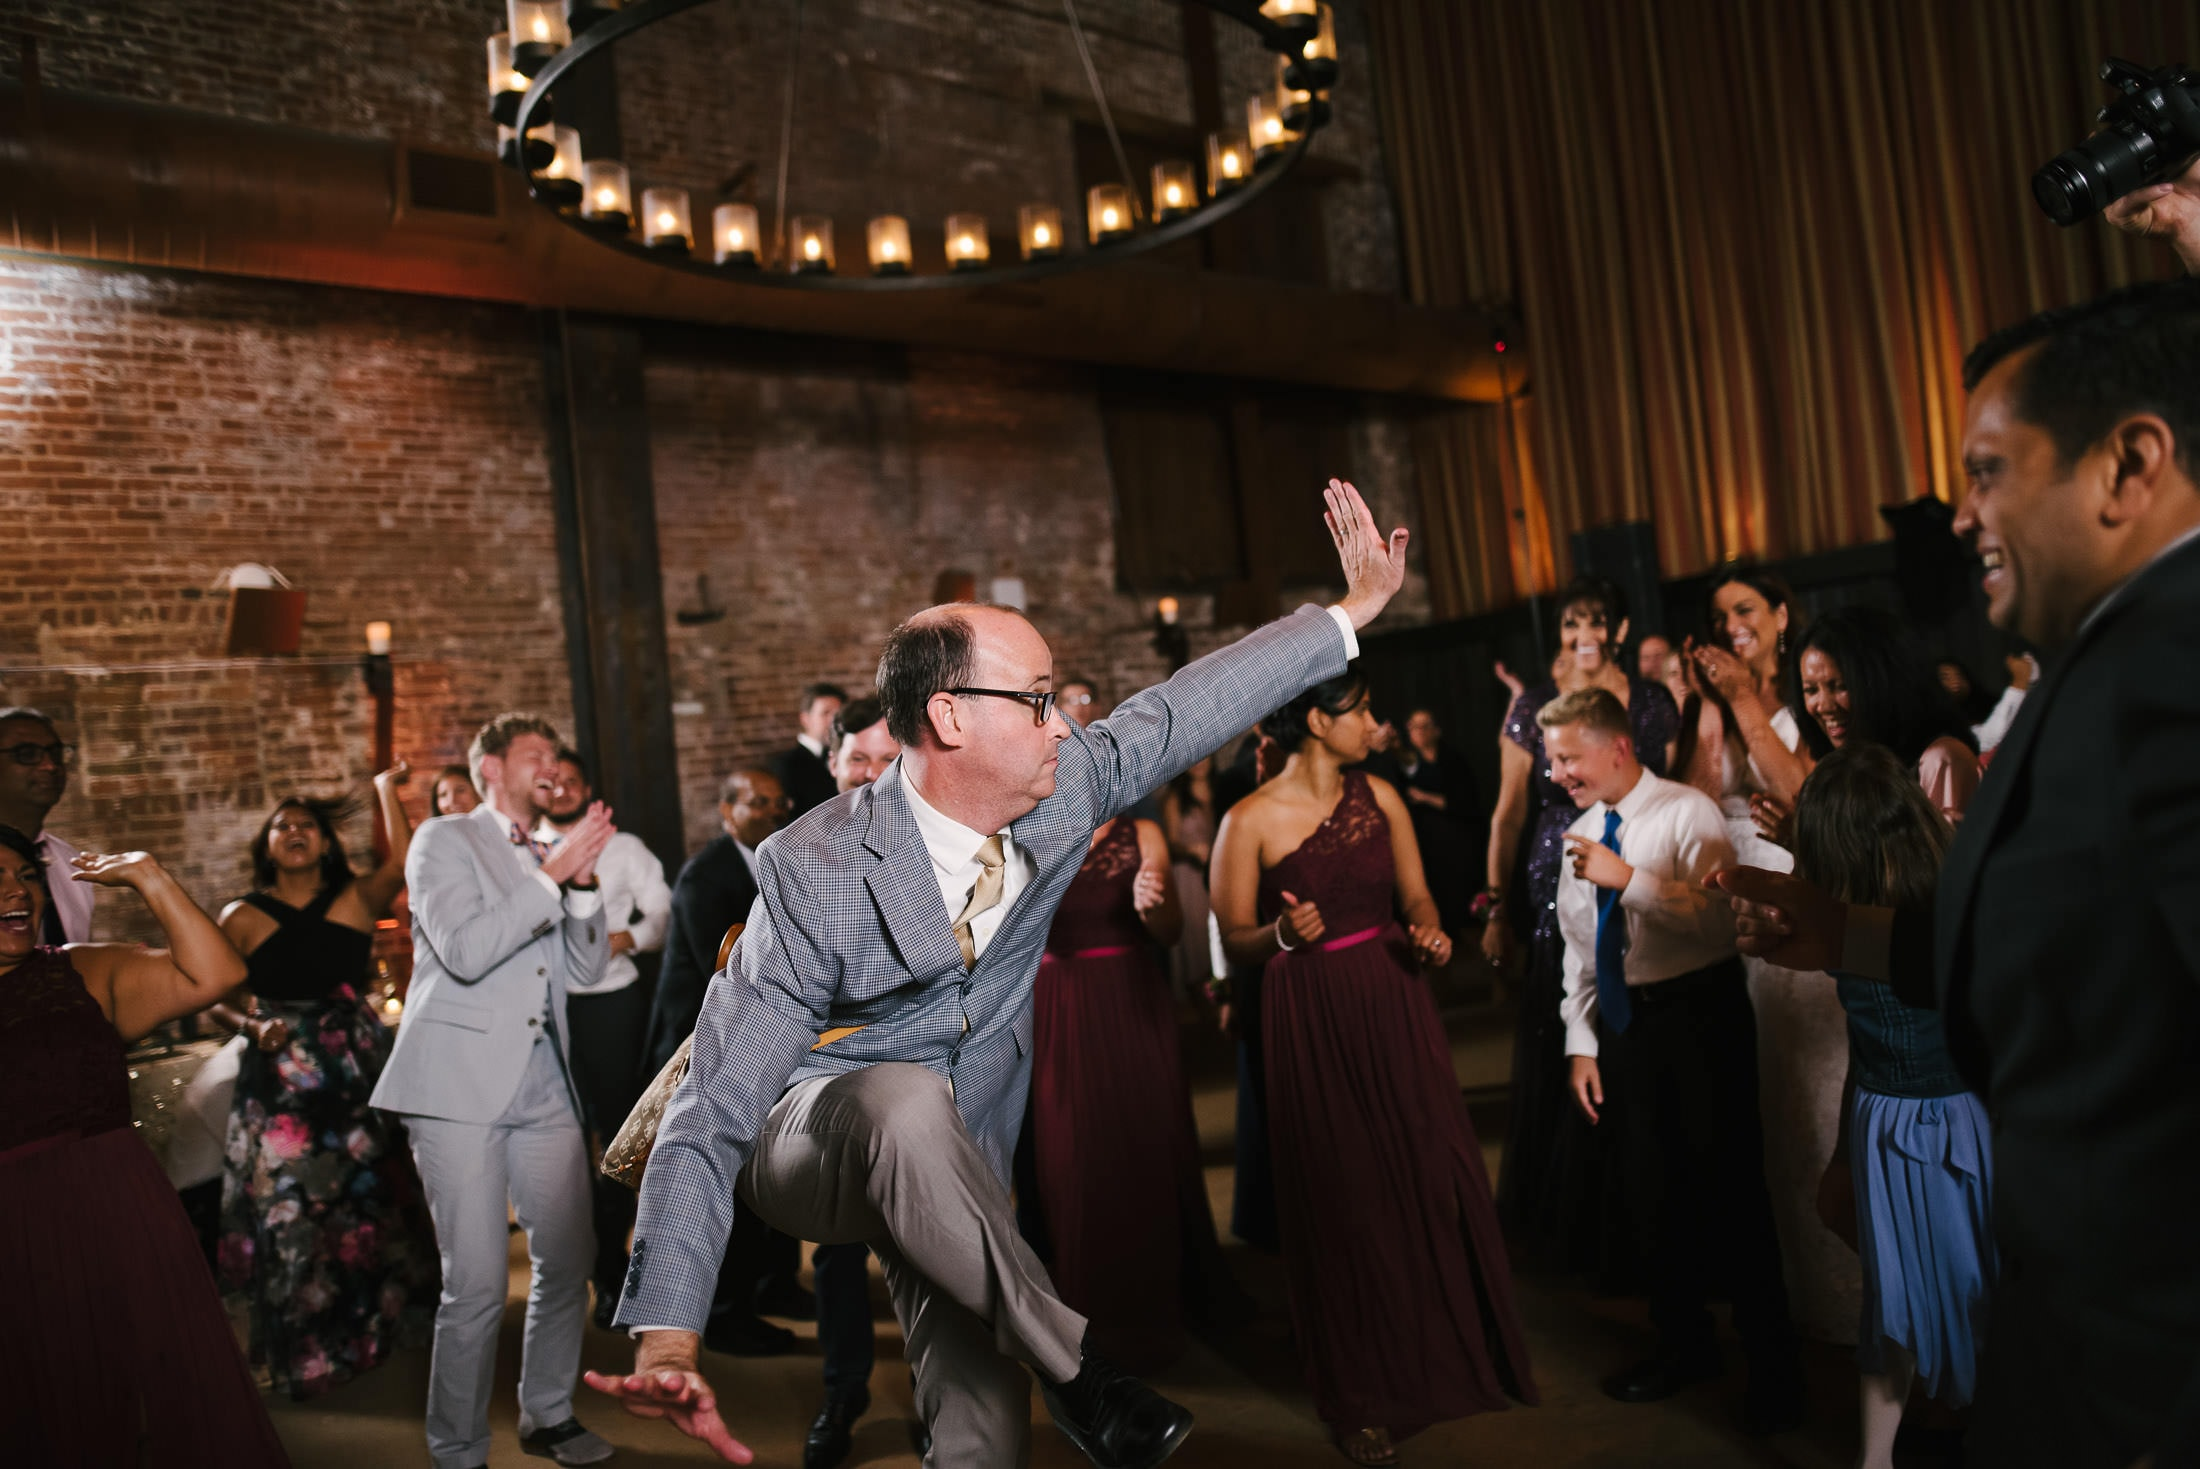 Fun Wedding Dance Floor Pic